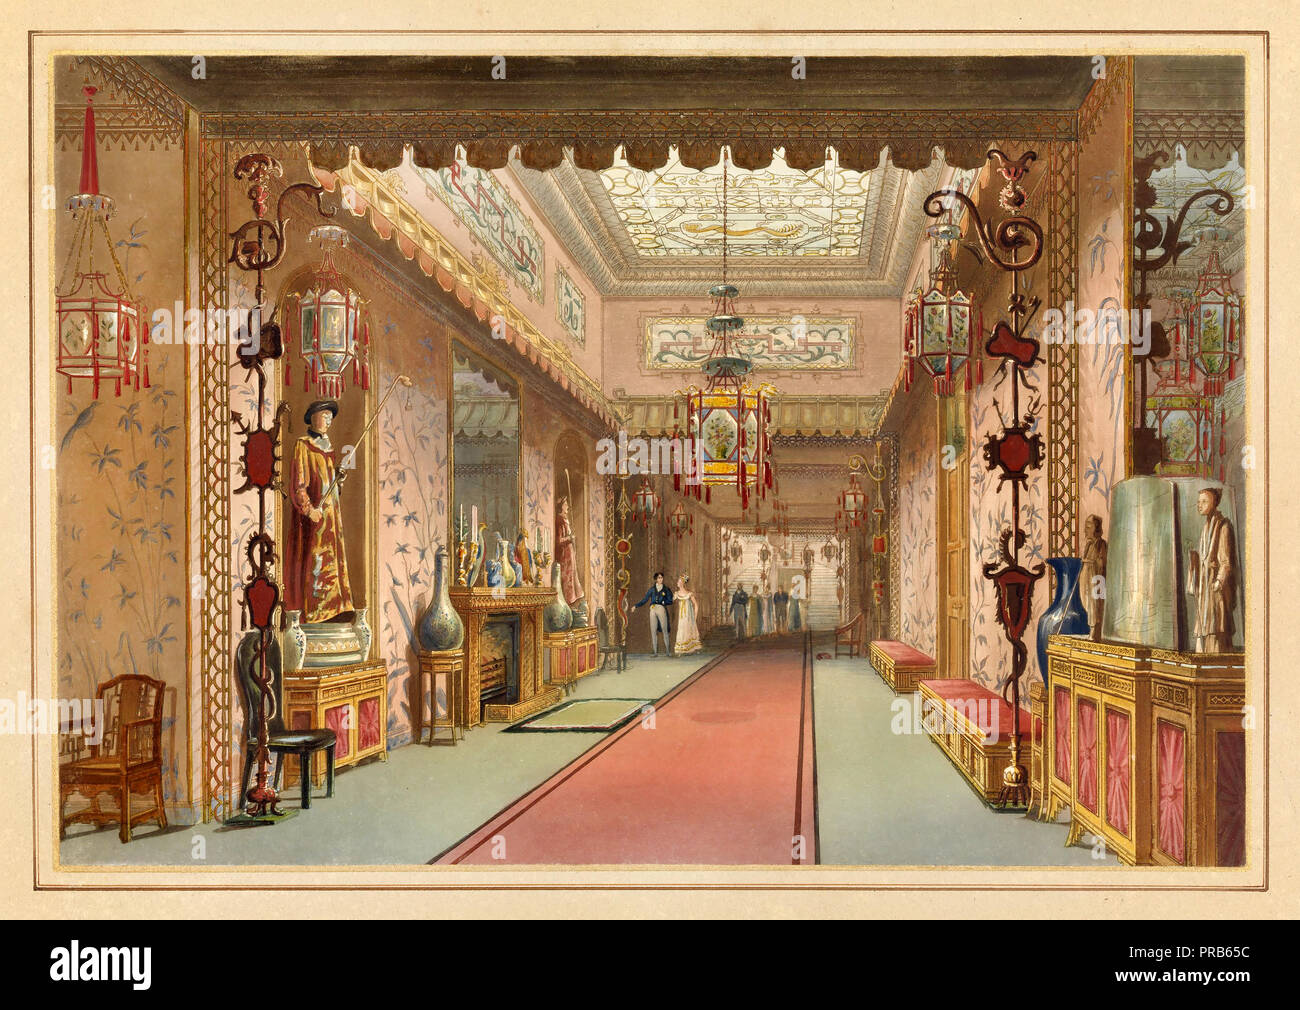 John Nash, Chinese Gallery As It Was, Plate XV in Illustrations of Her Majesty's Palace at Brighton, 1820 Etching and aquatint, brush and watercolor,  - Stock Image